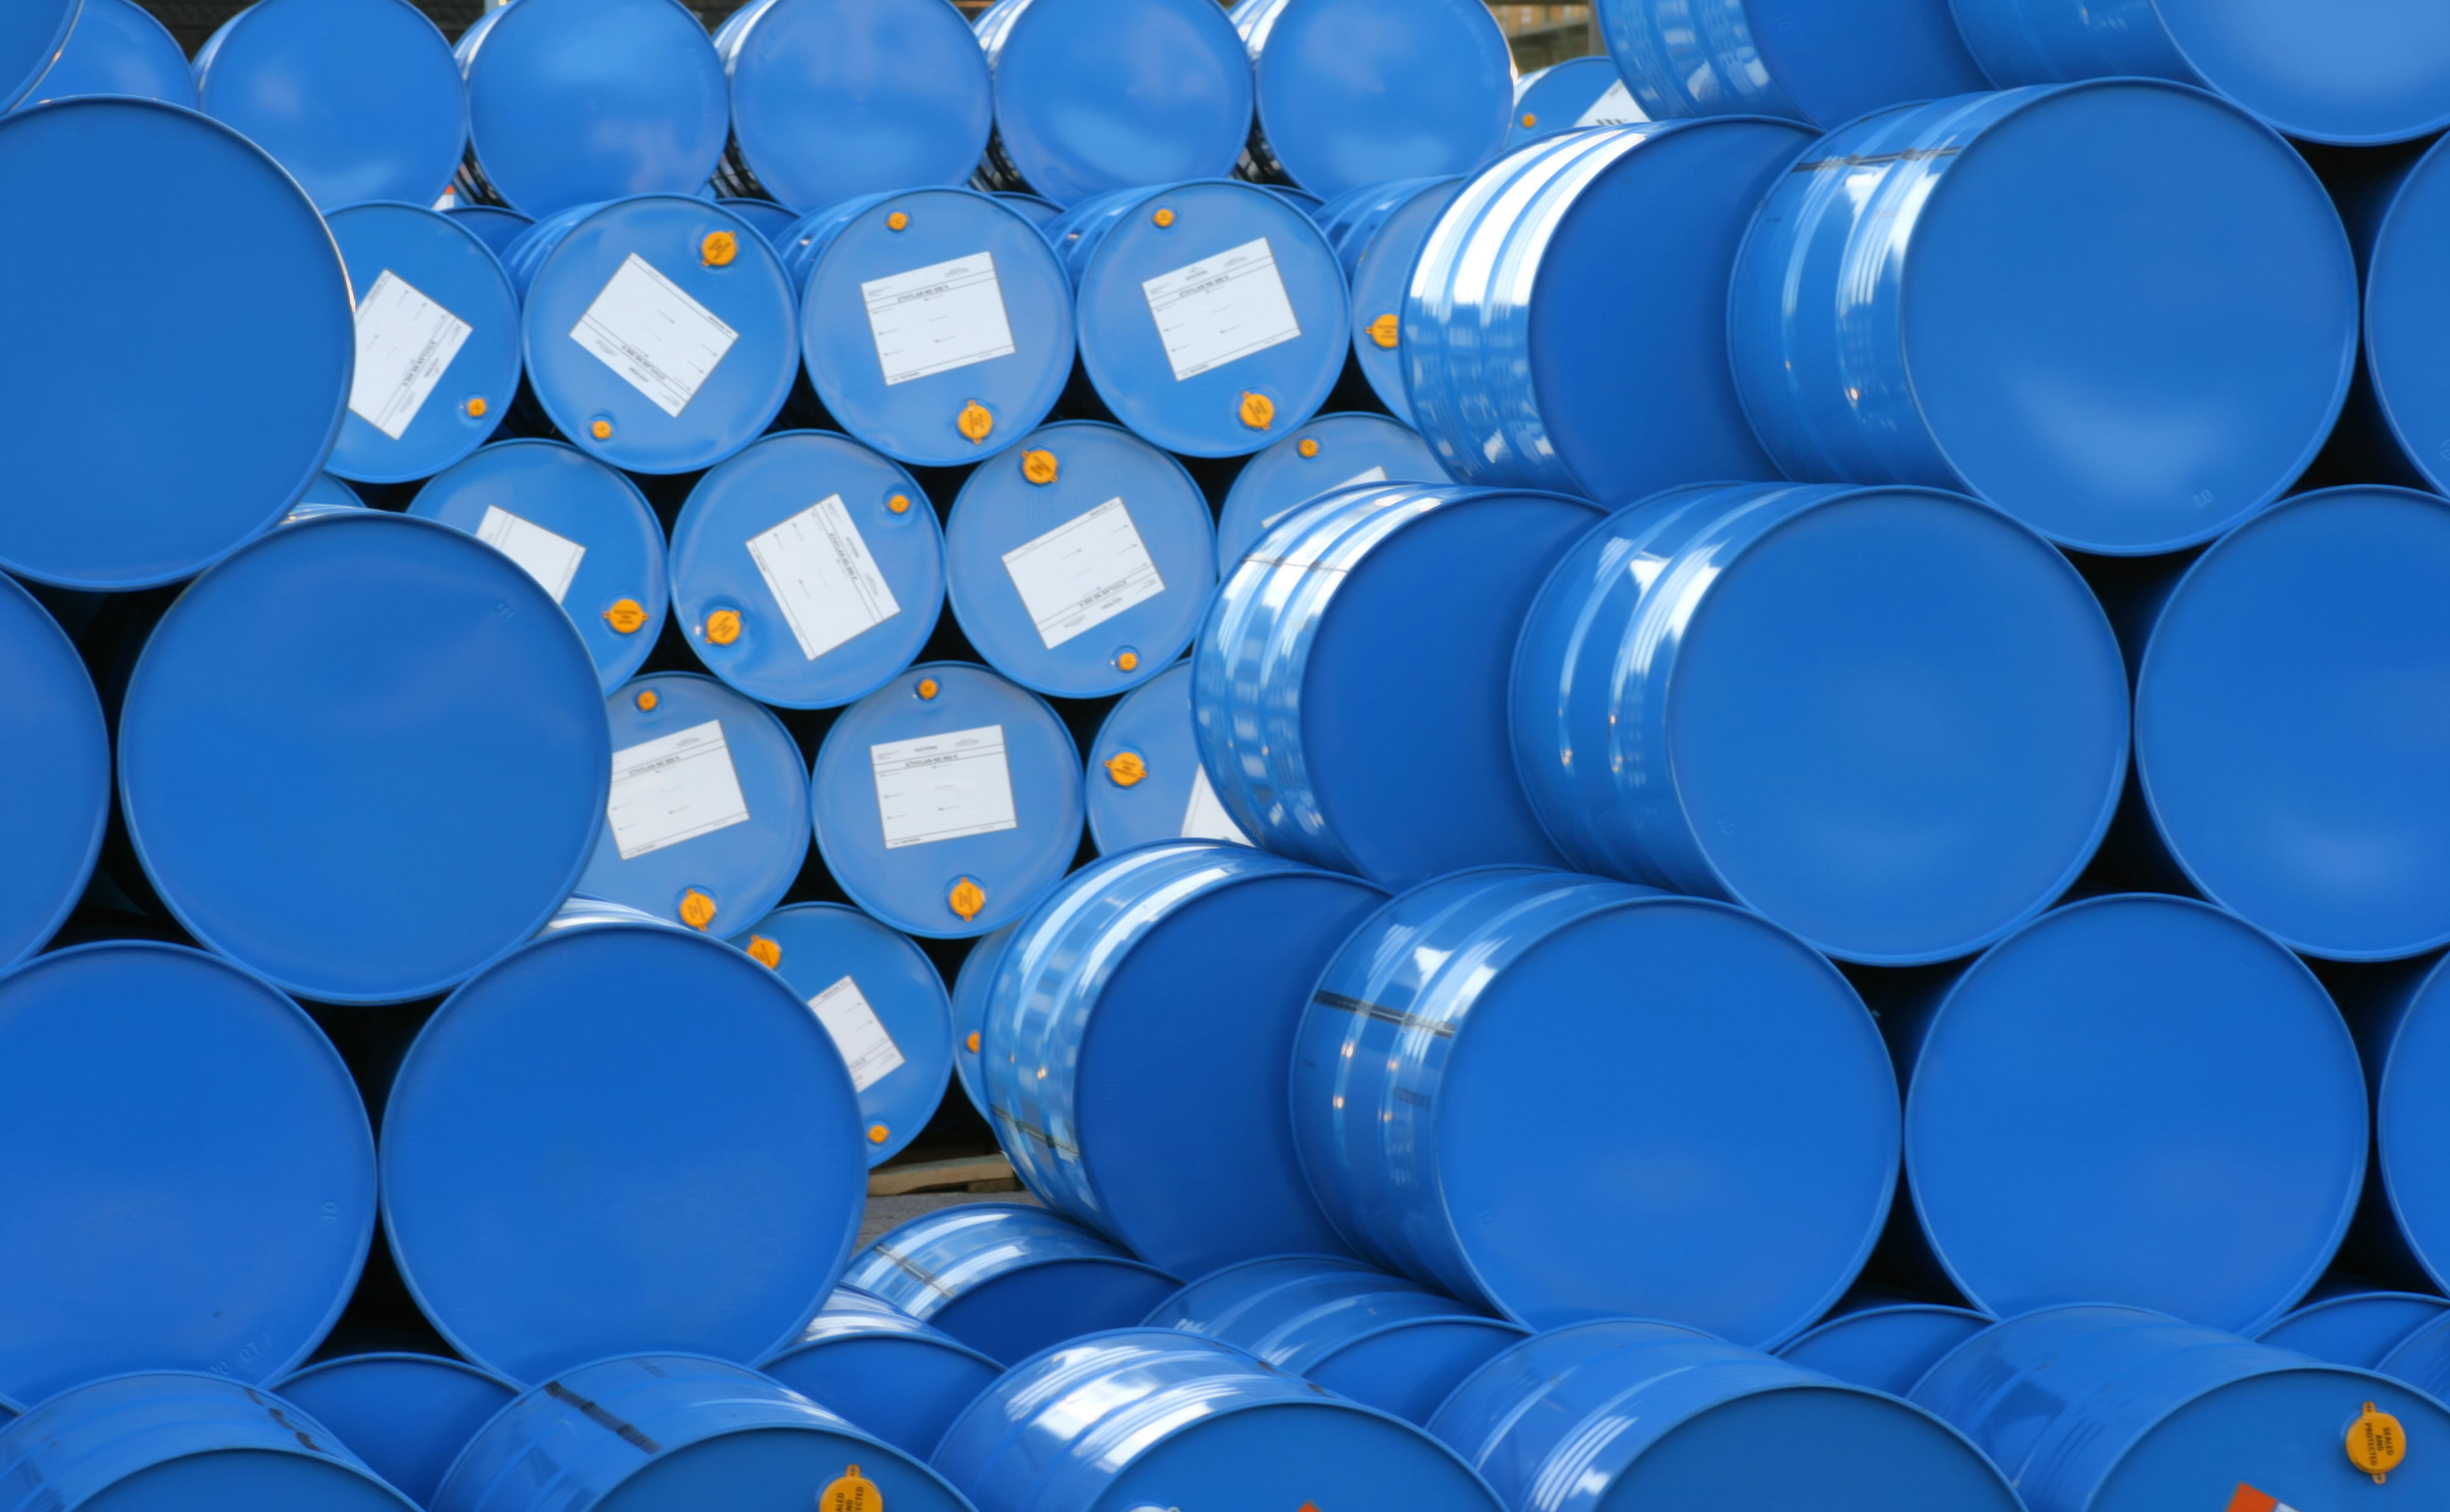 blue barrels with white labels